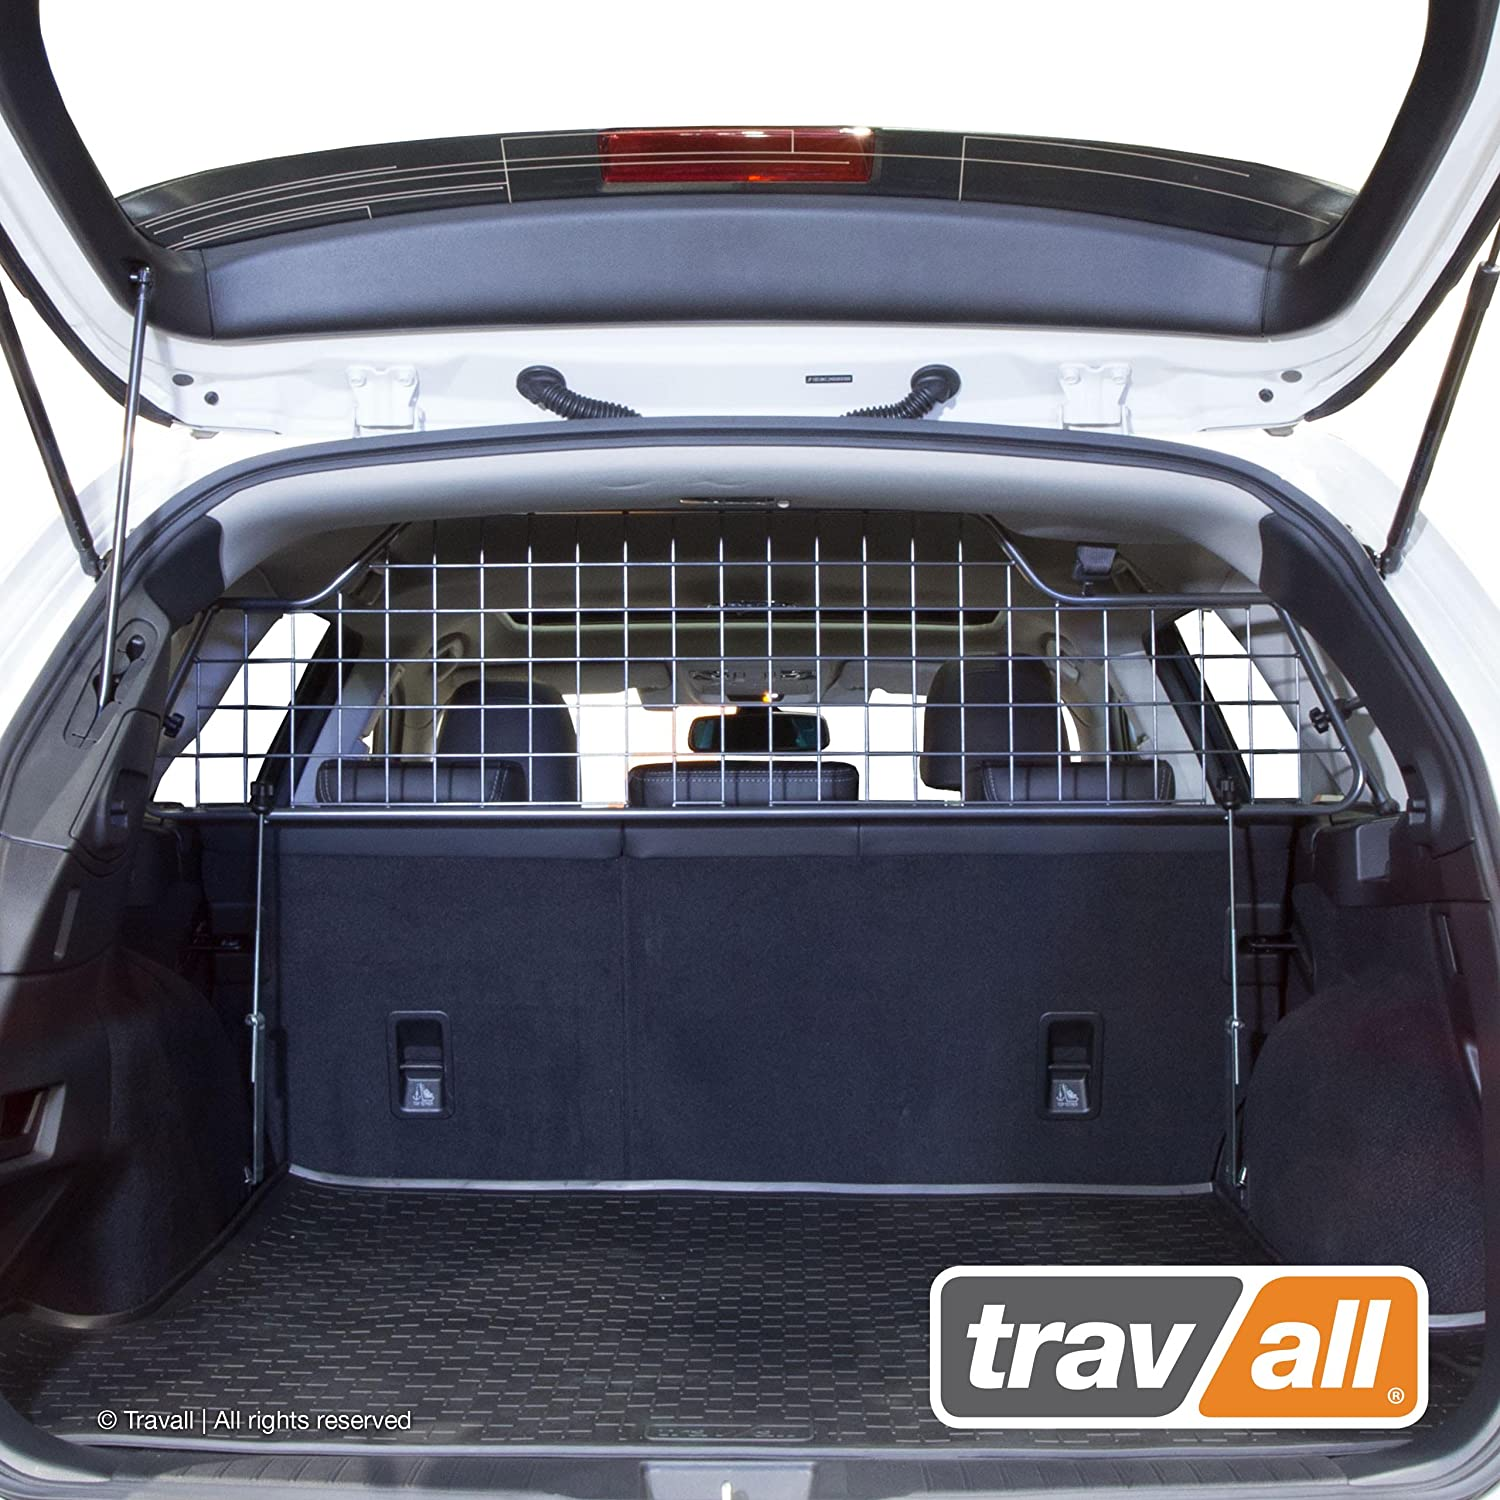 Travall Guard Compatible with Subaru Outback 2014-Current TDG1476 – Rattle-Free Luggage and Pet Barrier